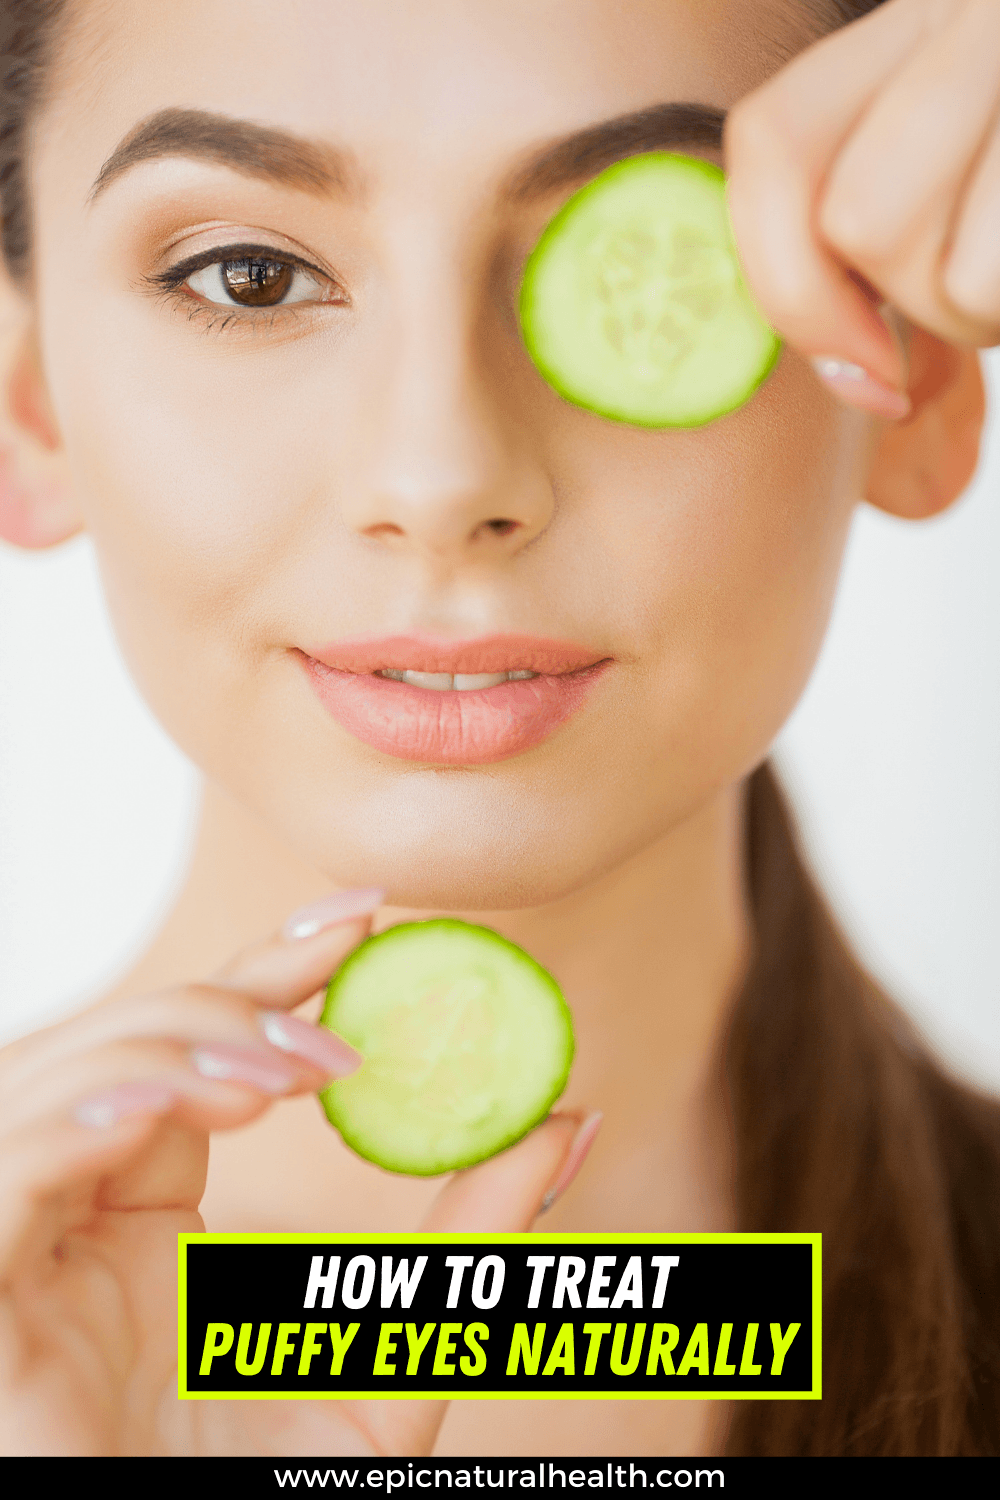 How to treat puffy eyes naturally